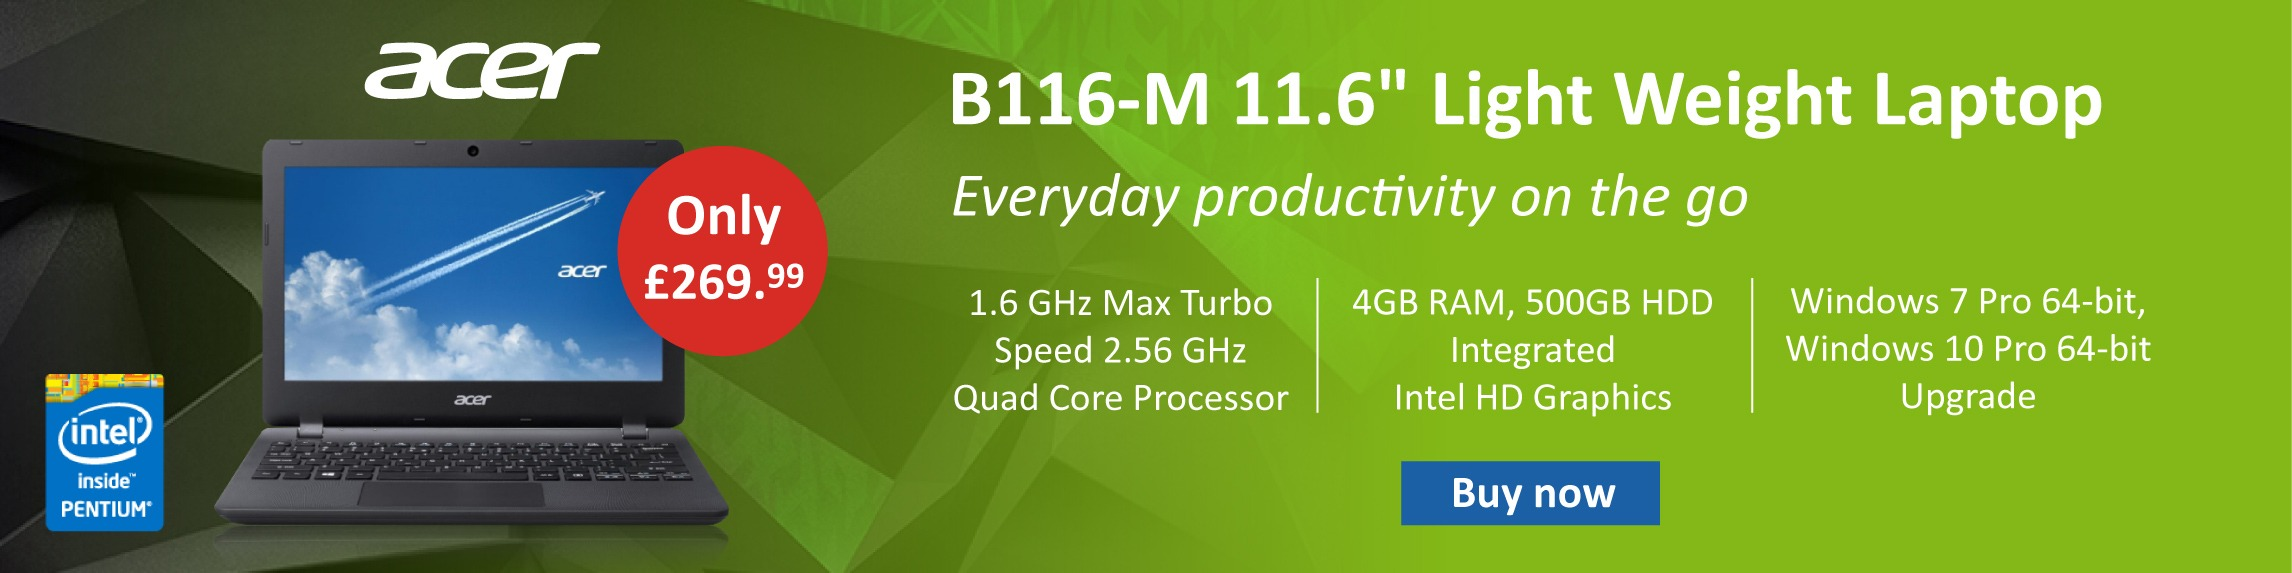 Acer B116-M